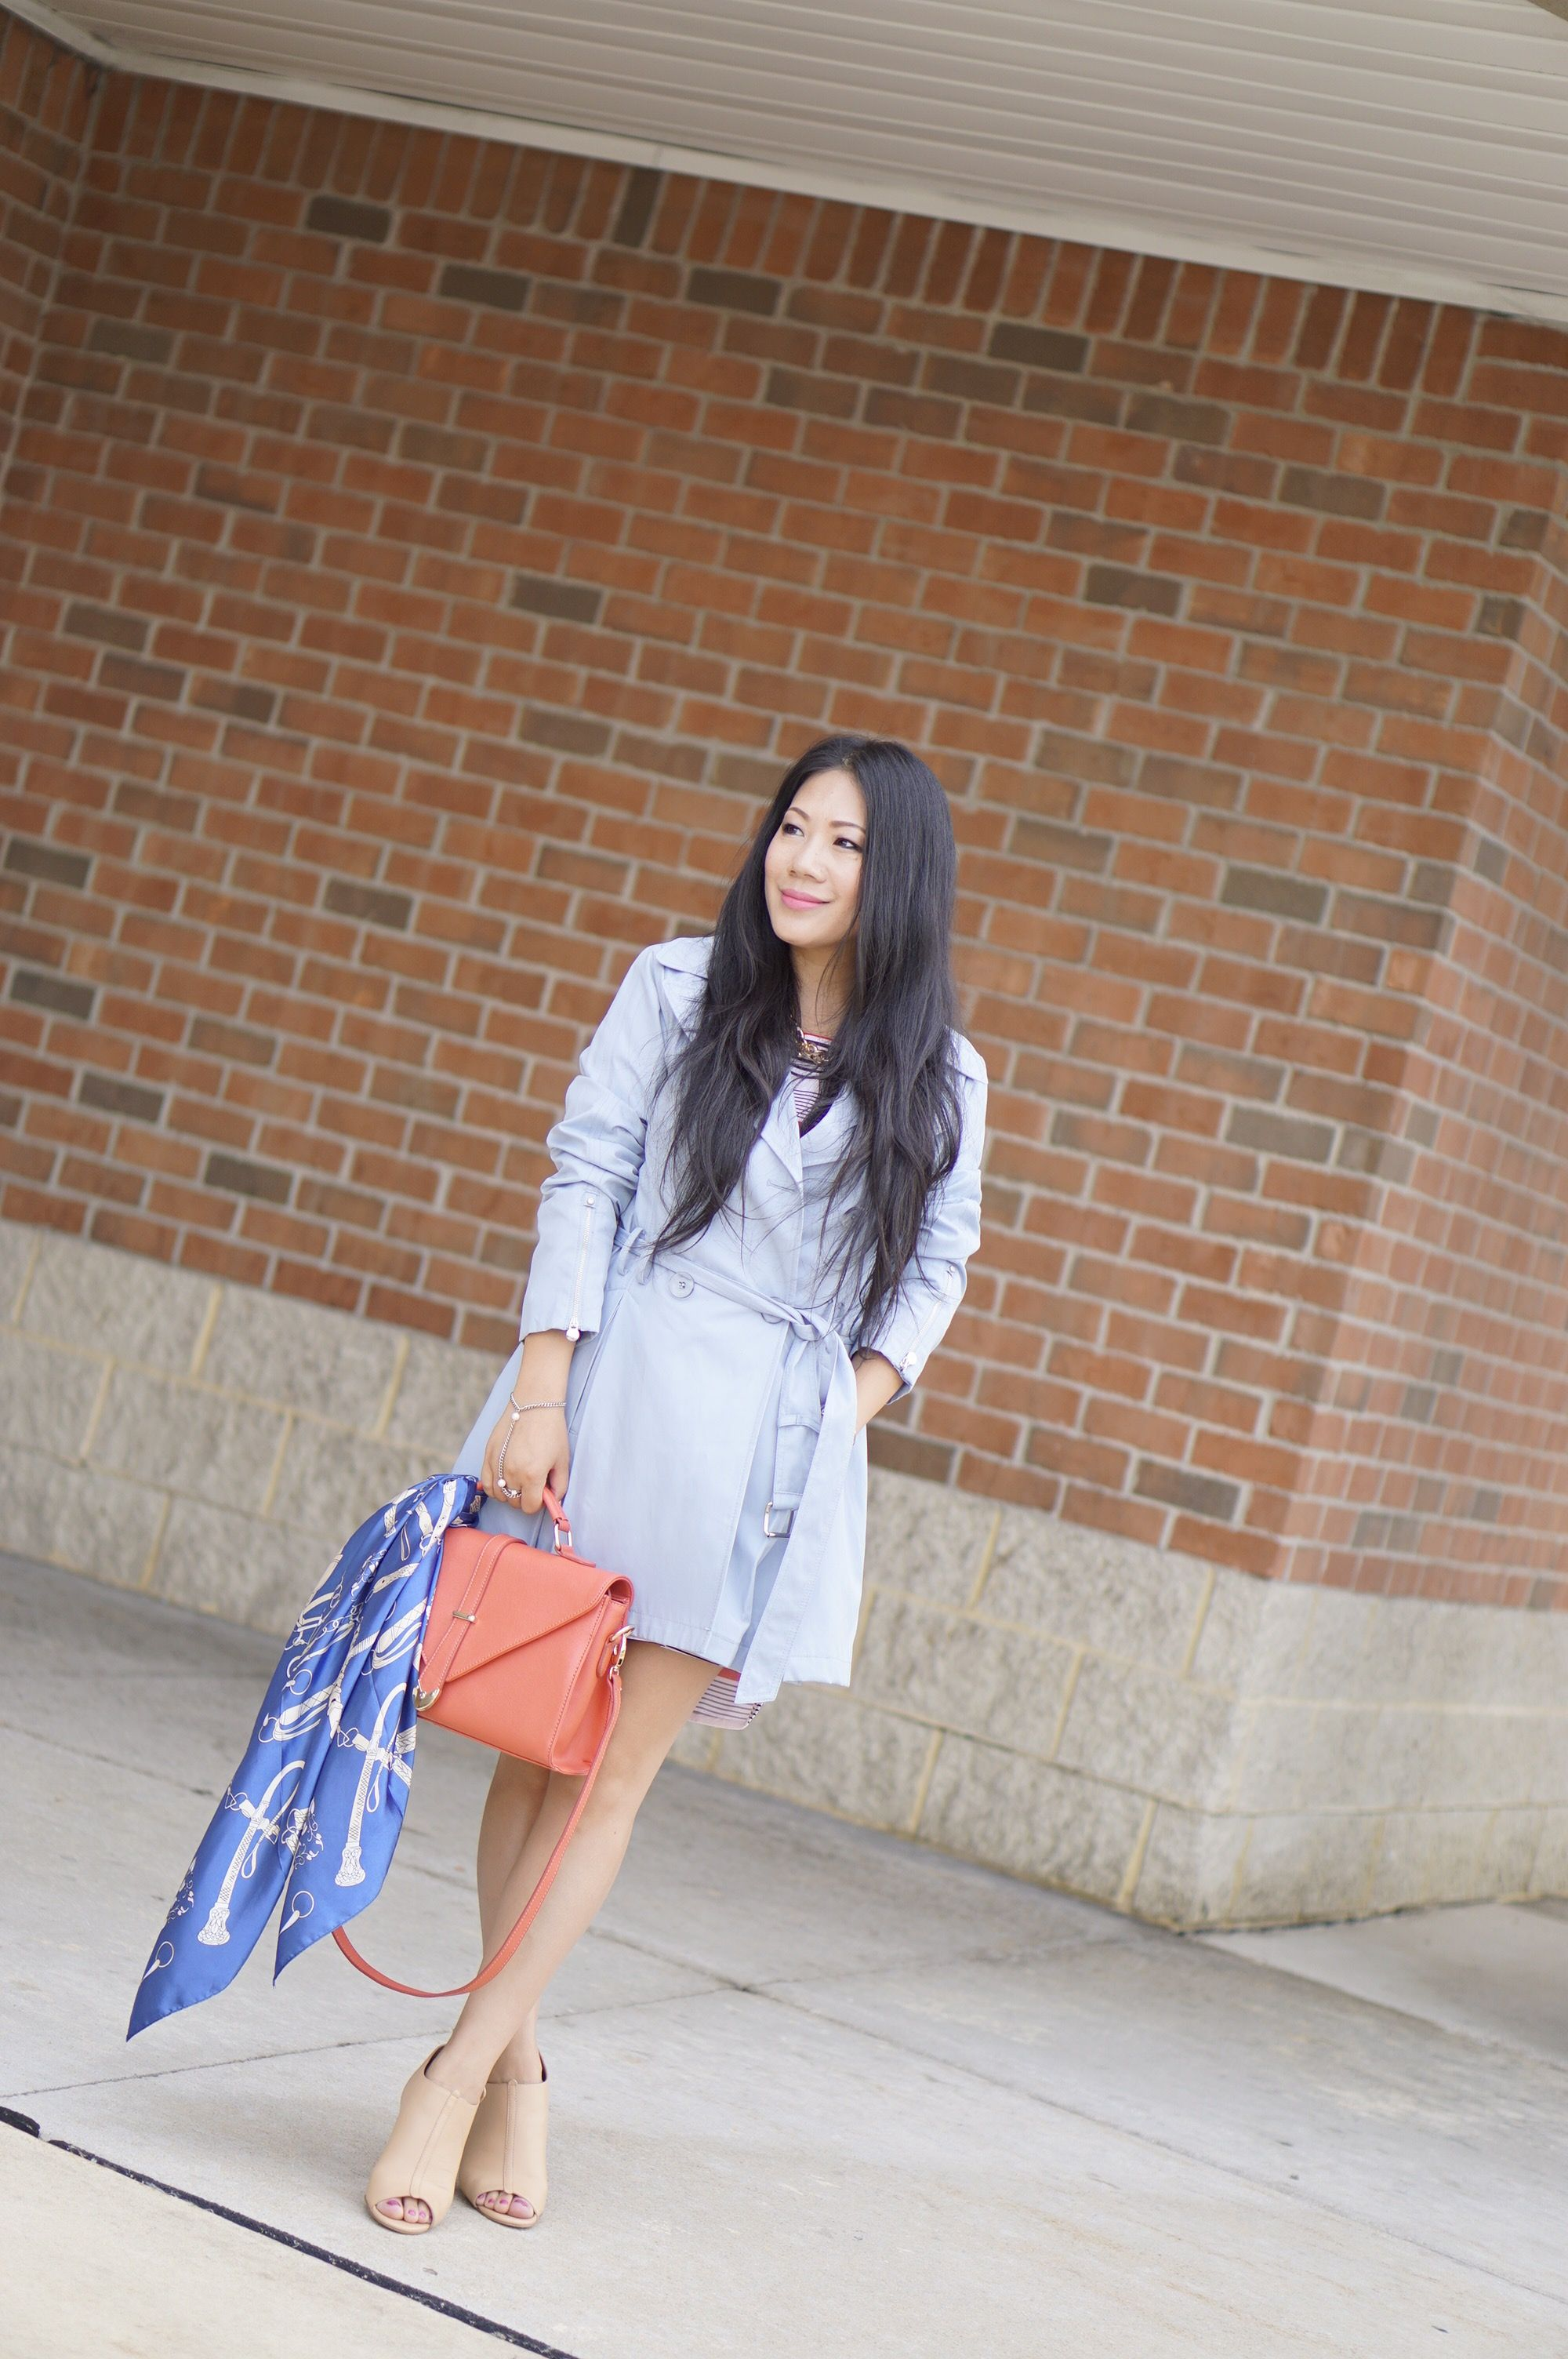 laundry light blue trench coat +tripped shift dress+Charles nude peek toe booties